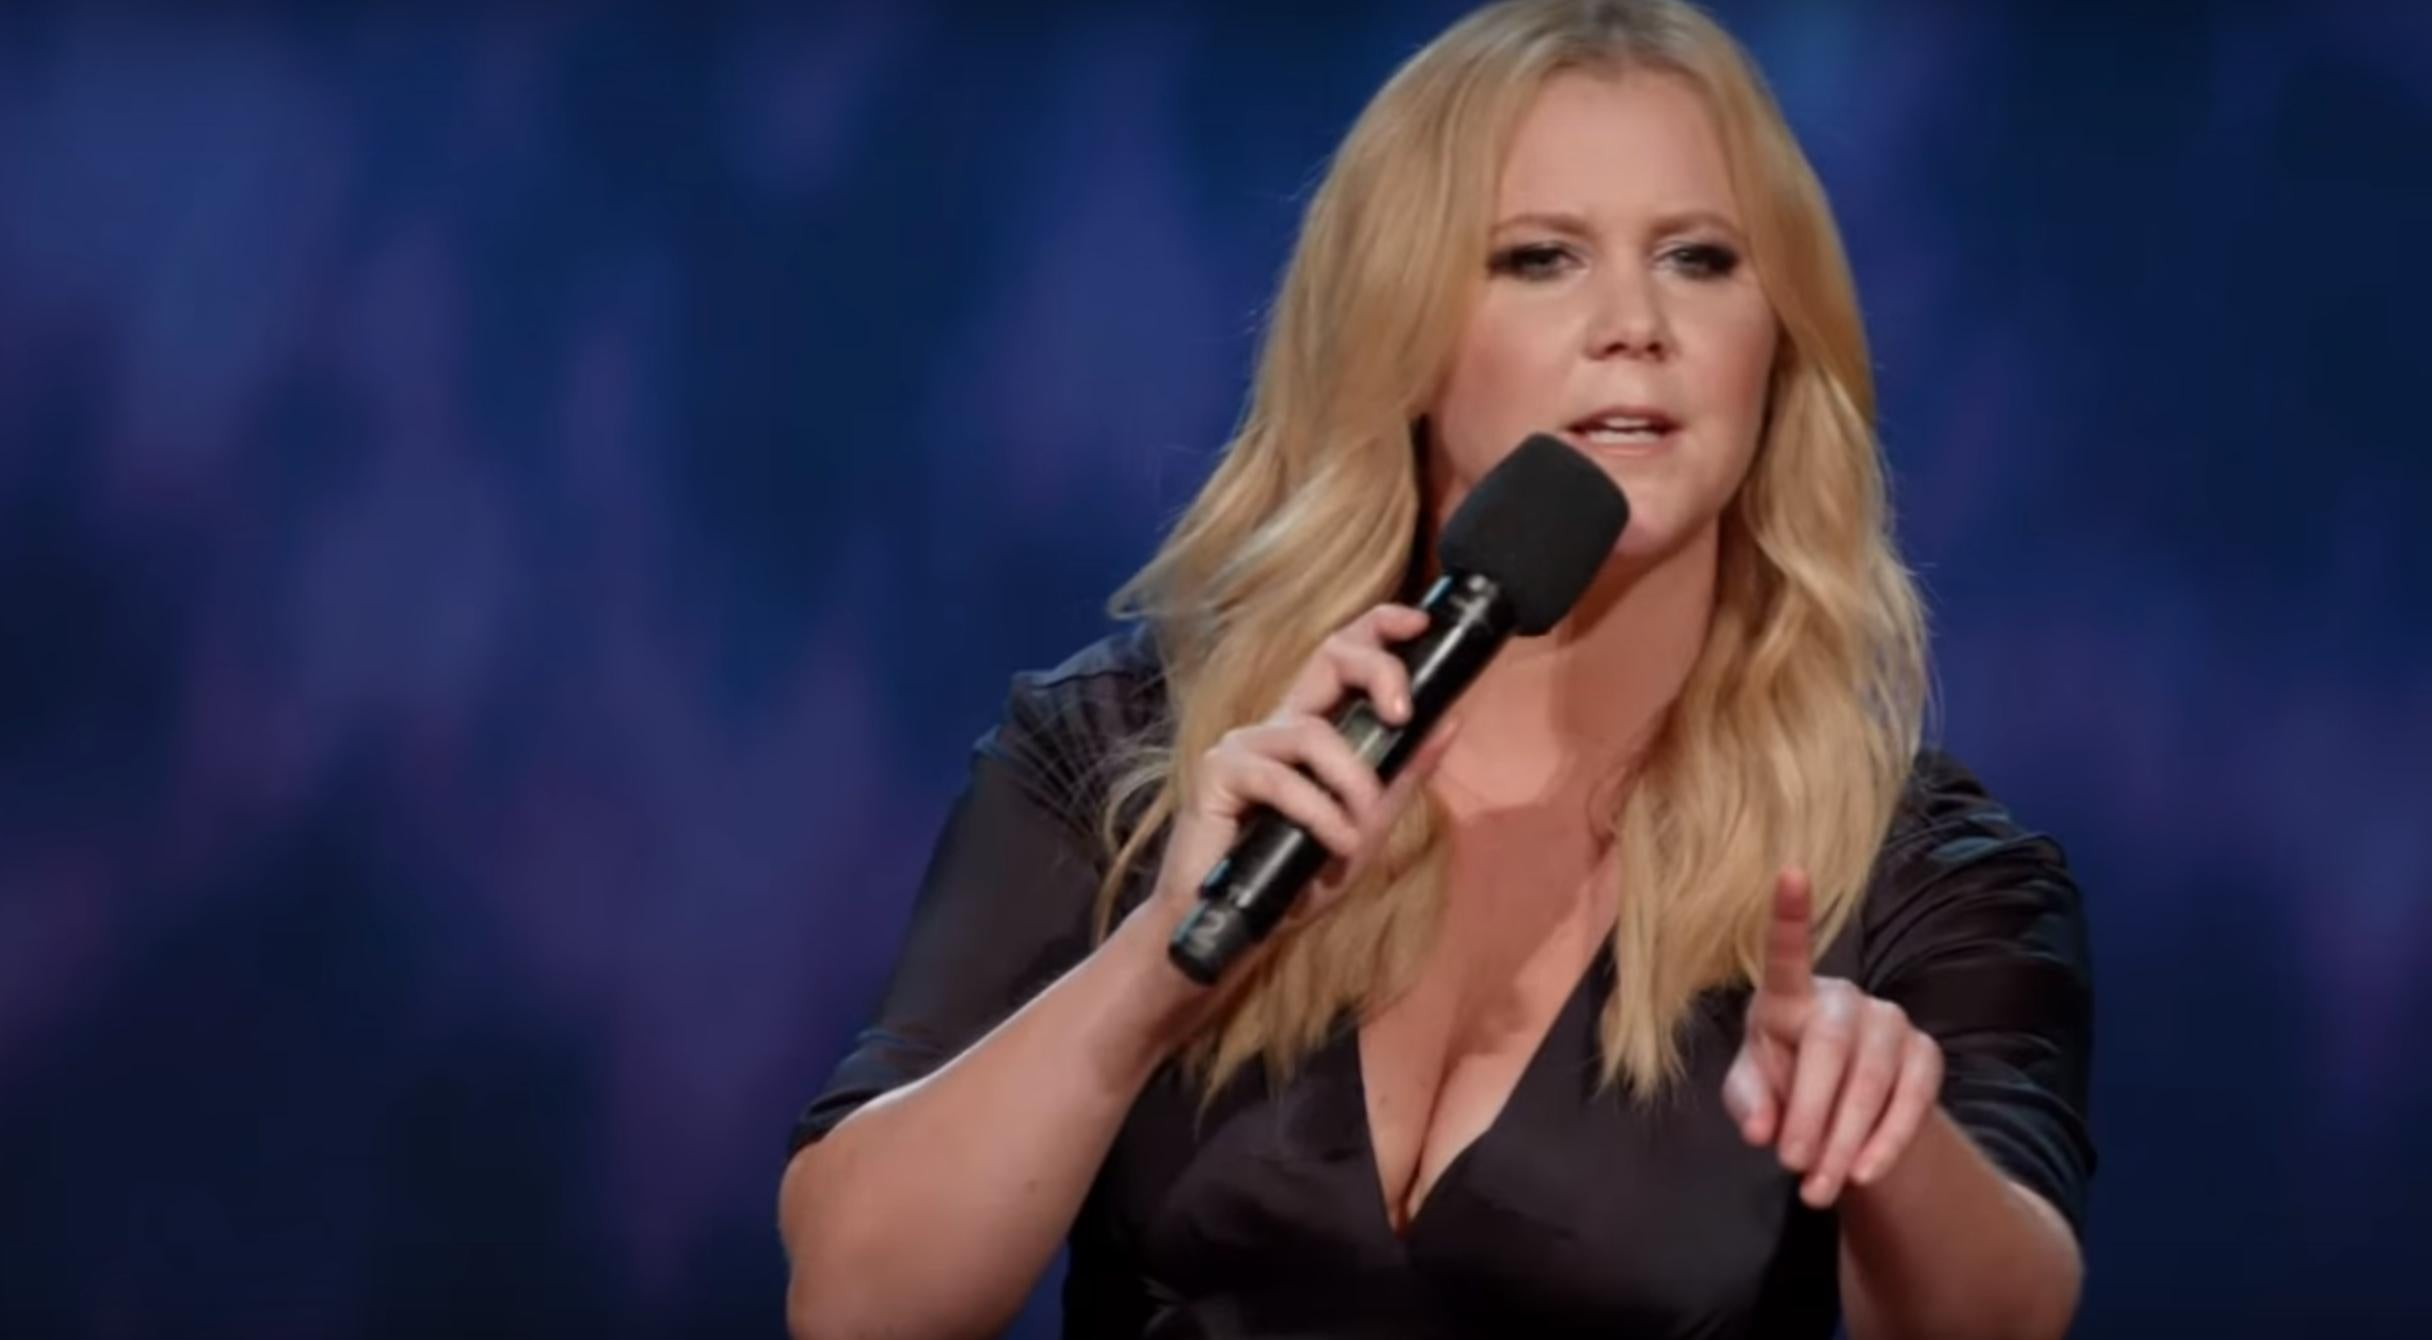 Amy Schumer Sex Video amy schumer: live at the apollo round-up: trainwreck actress